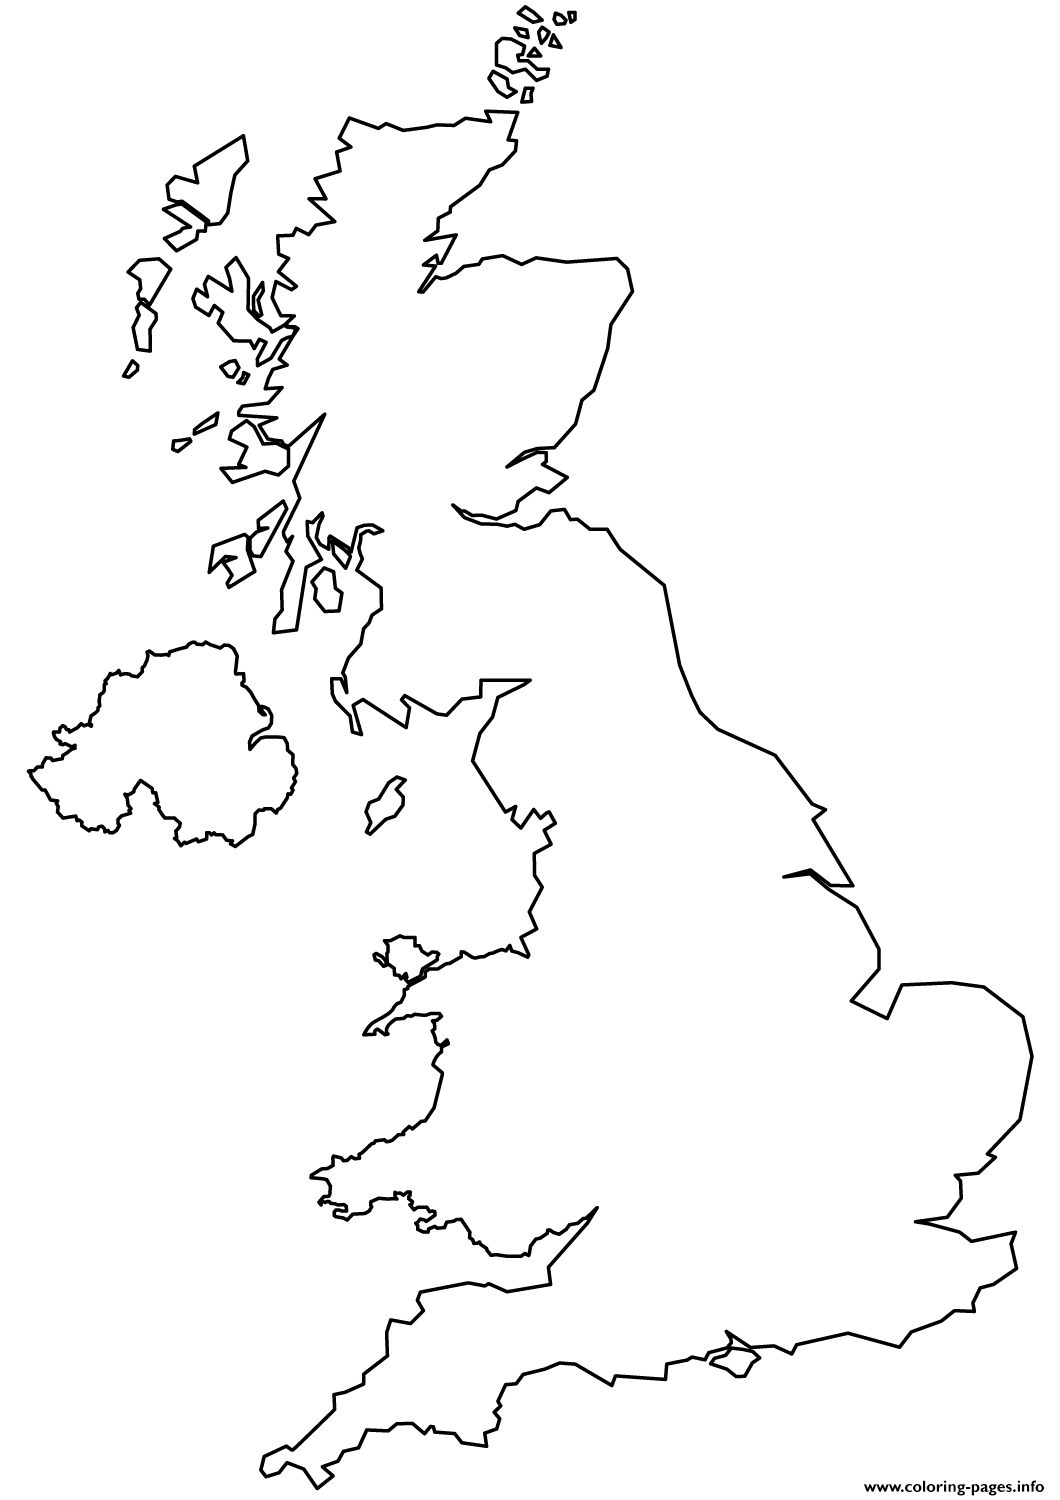 United Kingdom Map Coloring Pages